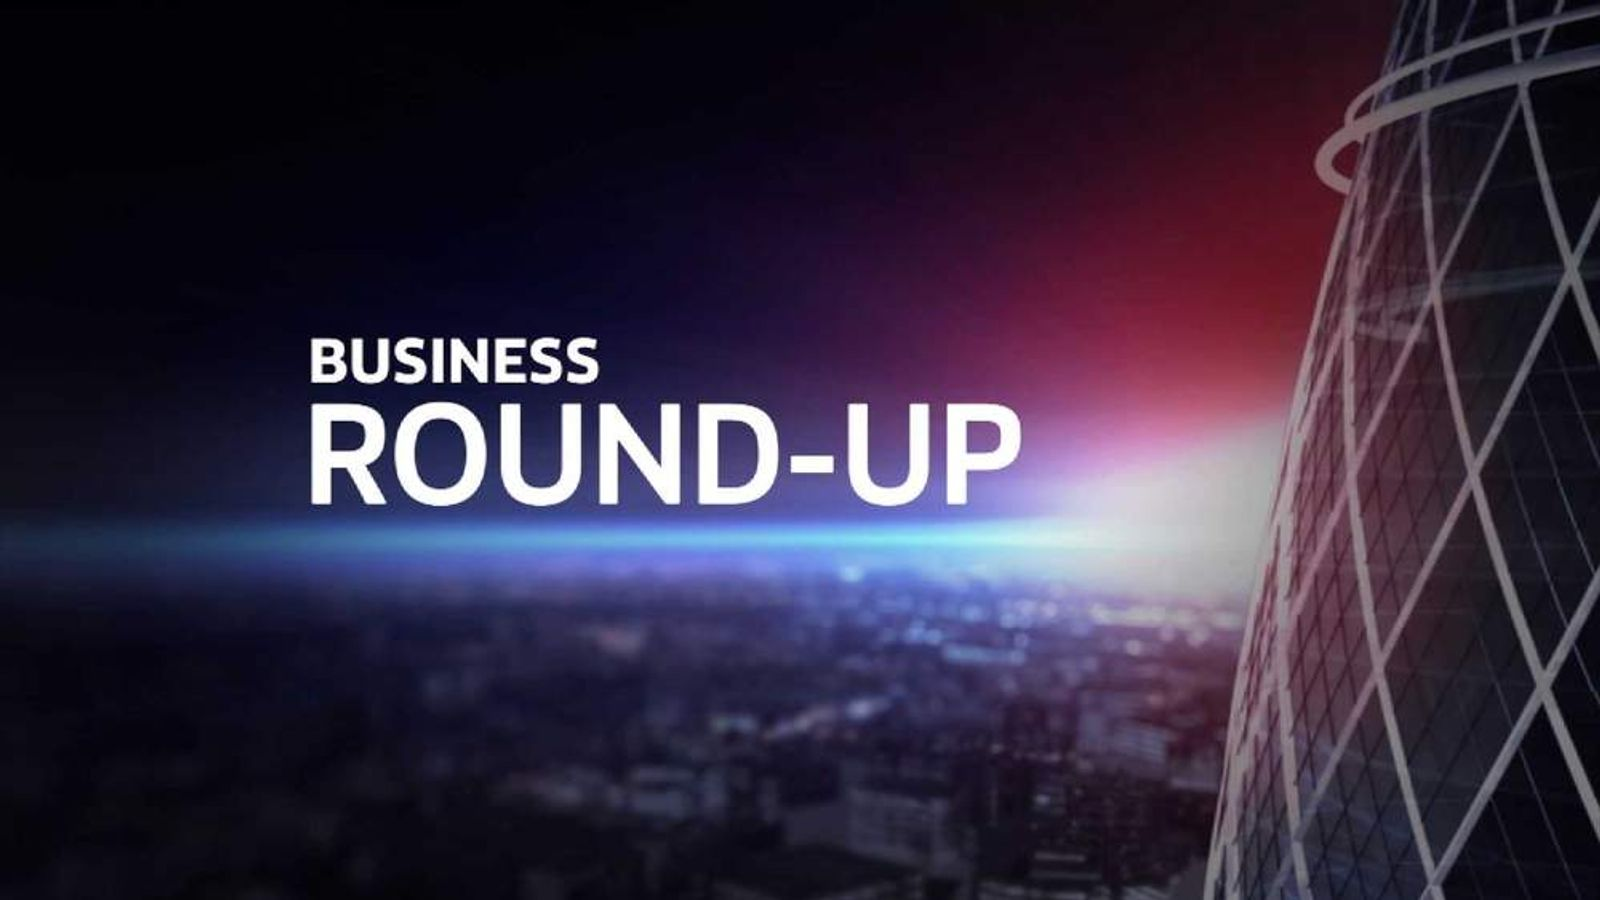 Biz Round-Up Logo